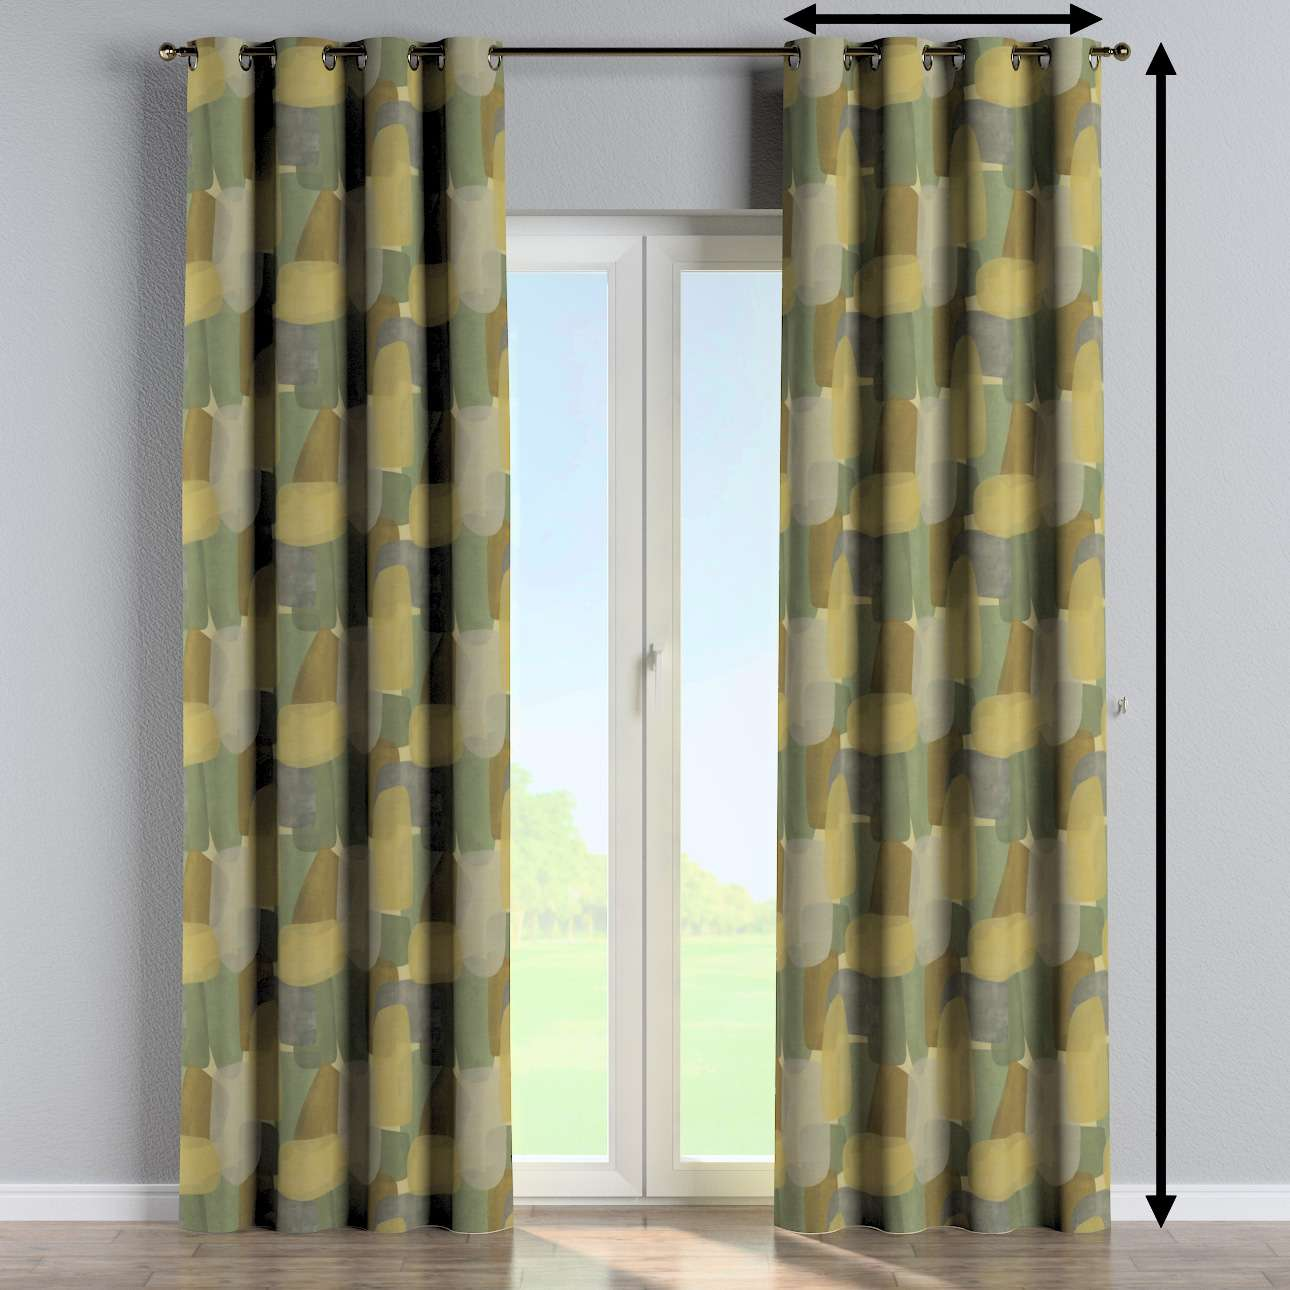 Eyelet curtain in collection Vintage 70's, fabric: 143-72